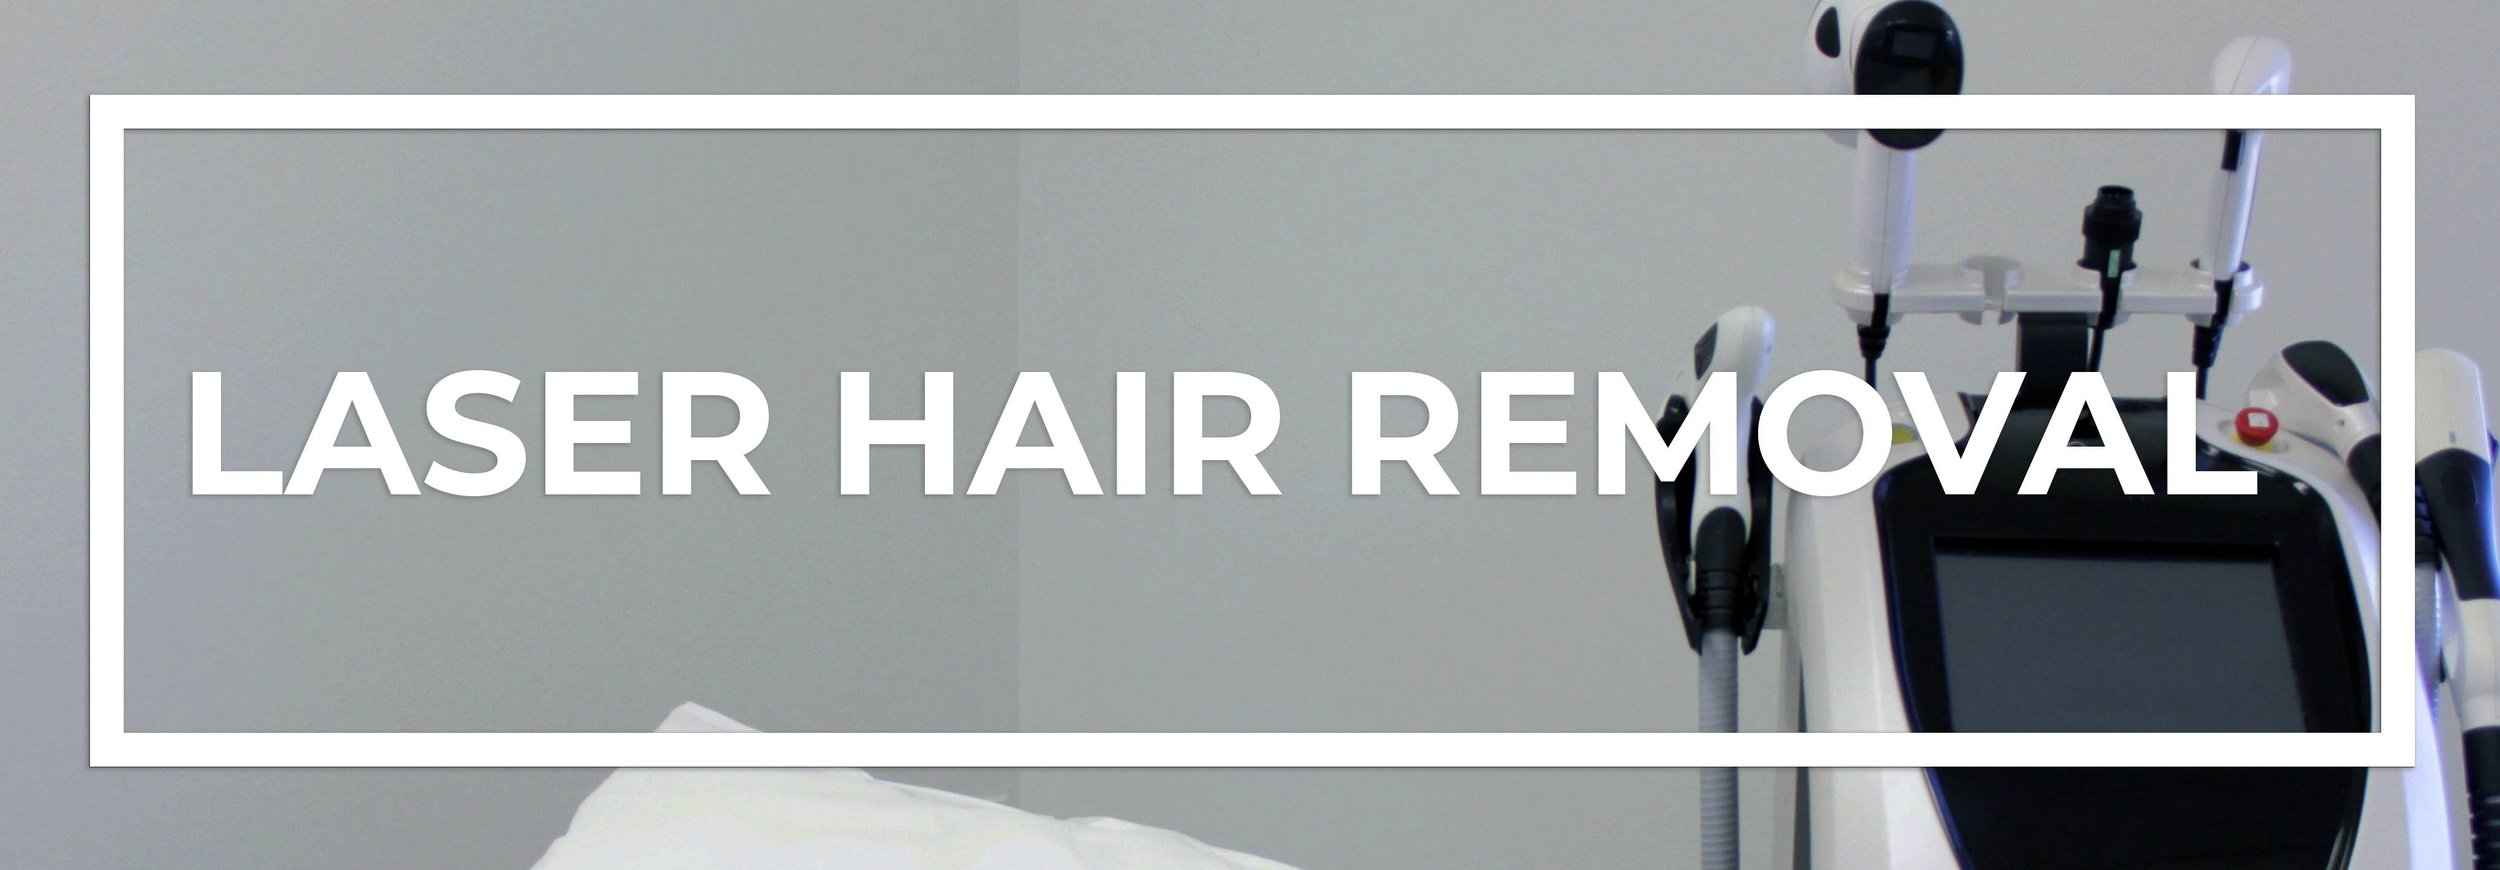 laser hair removal banner